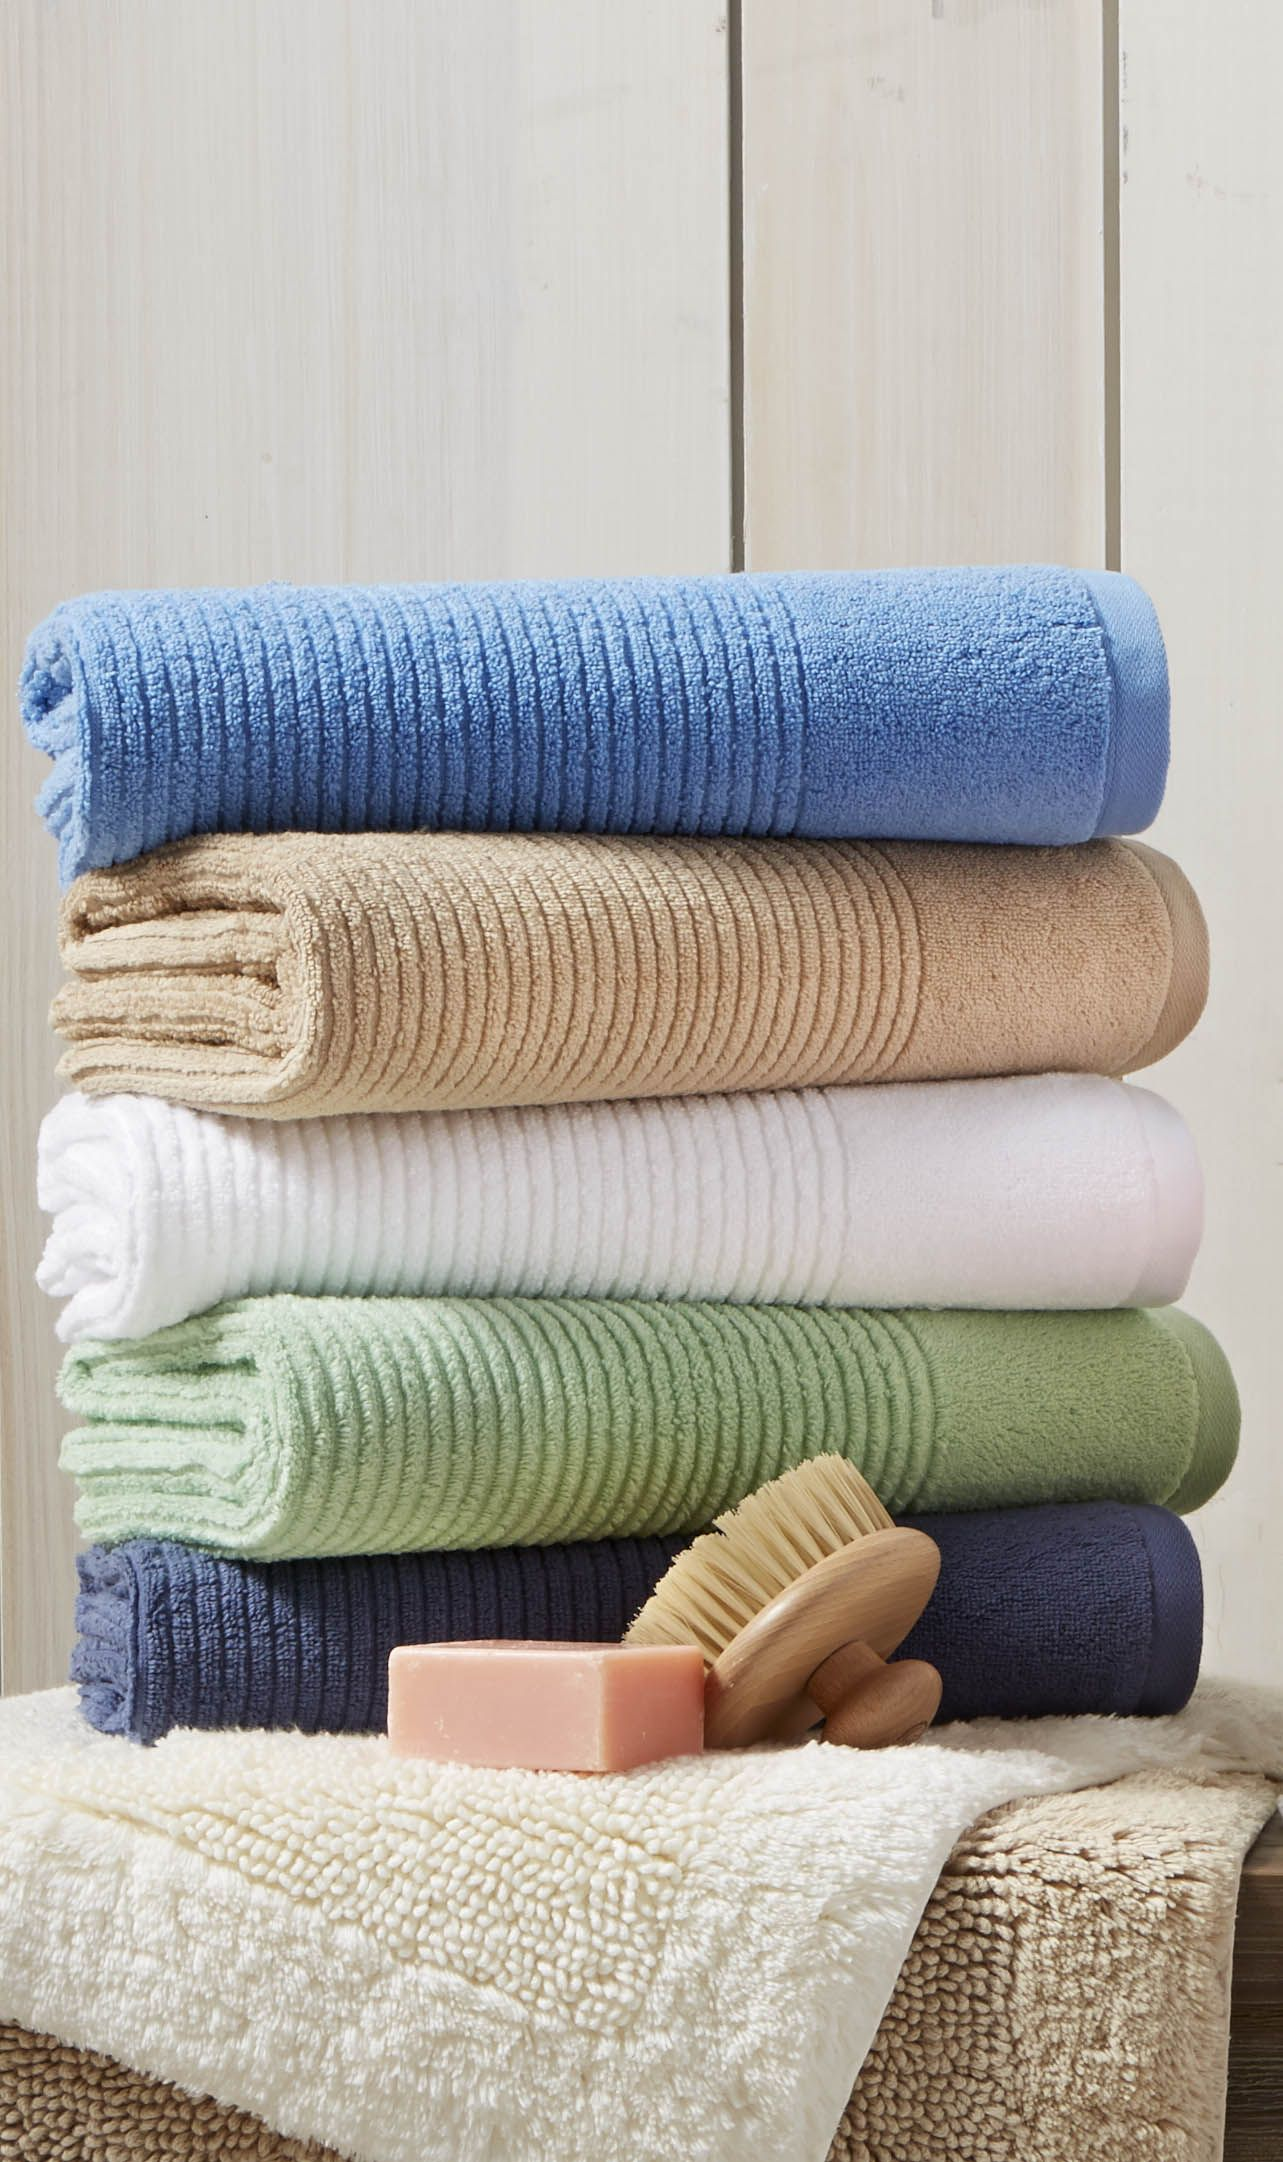 Martha Stewart Collection 27 X 52 Quick Dry Reversible Bath Towel Created For Macy S Reviews Bath Towels Bed Bath Macy S Towel Collection Quick Dry Towel Towel